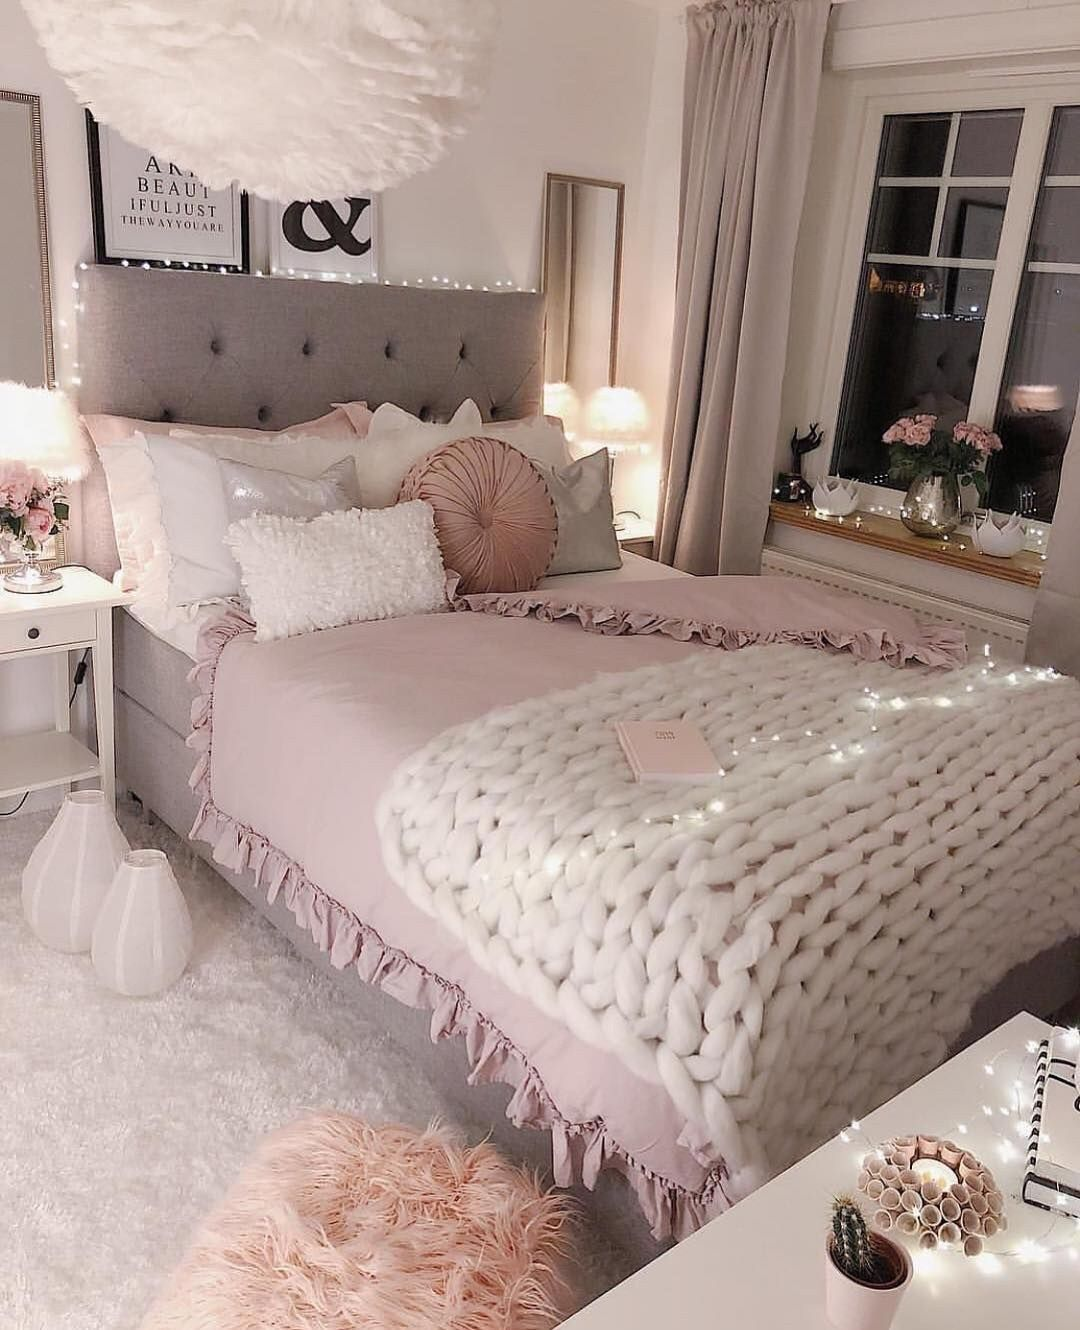 30 Teen Girl Bedroom Decor Ideas - The Wonder Cottage